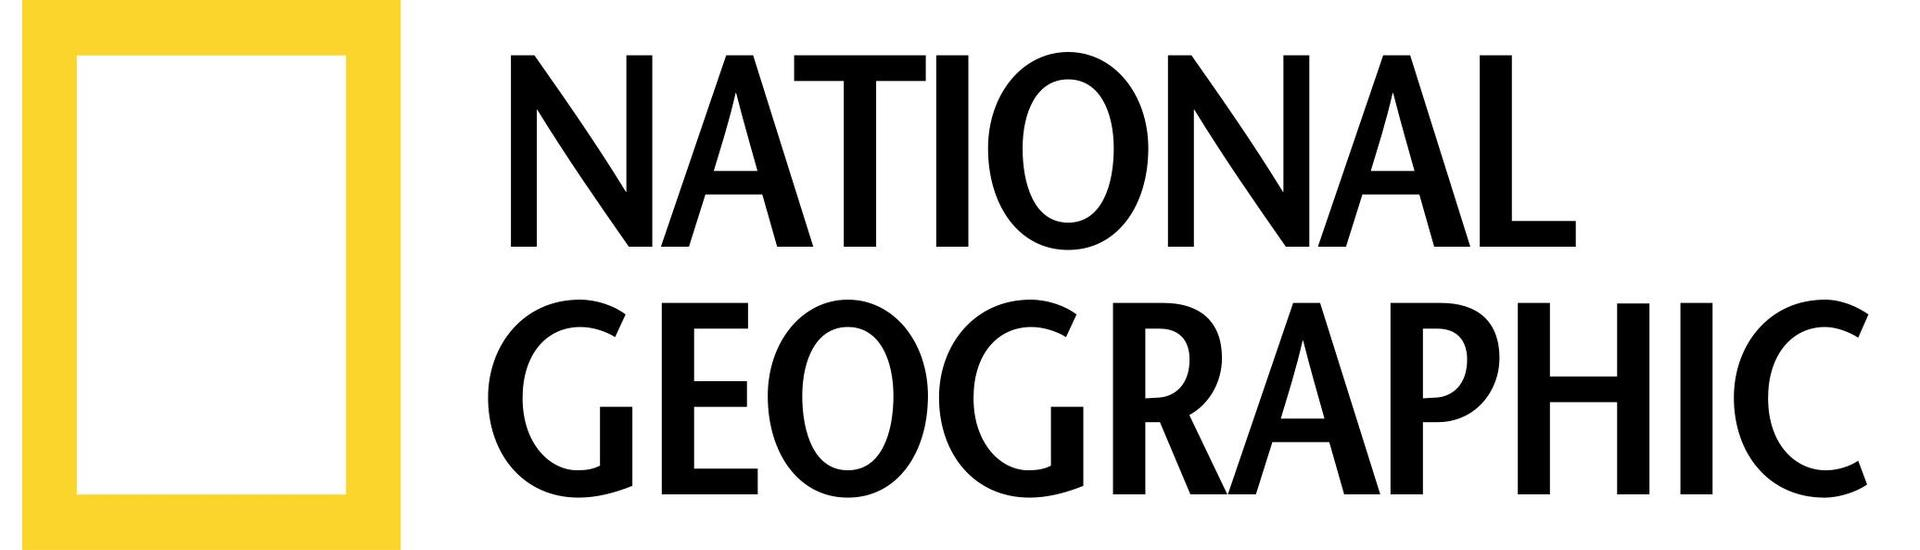 National Geographic logo featuring a yellow square